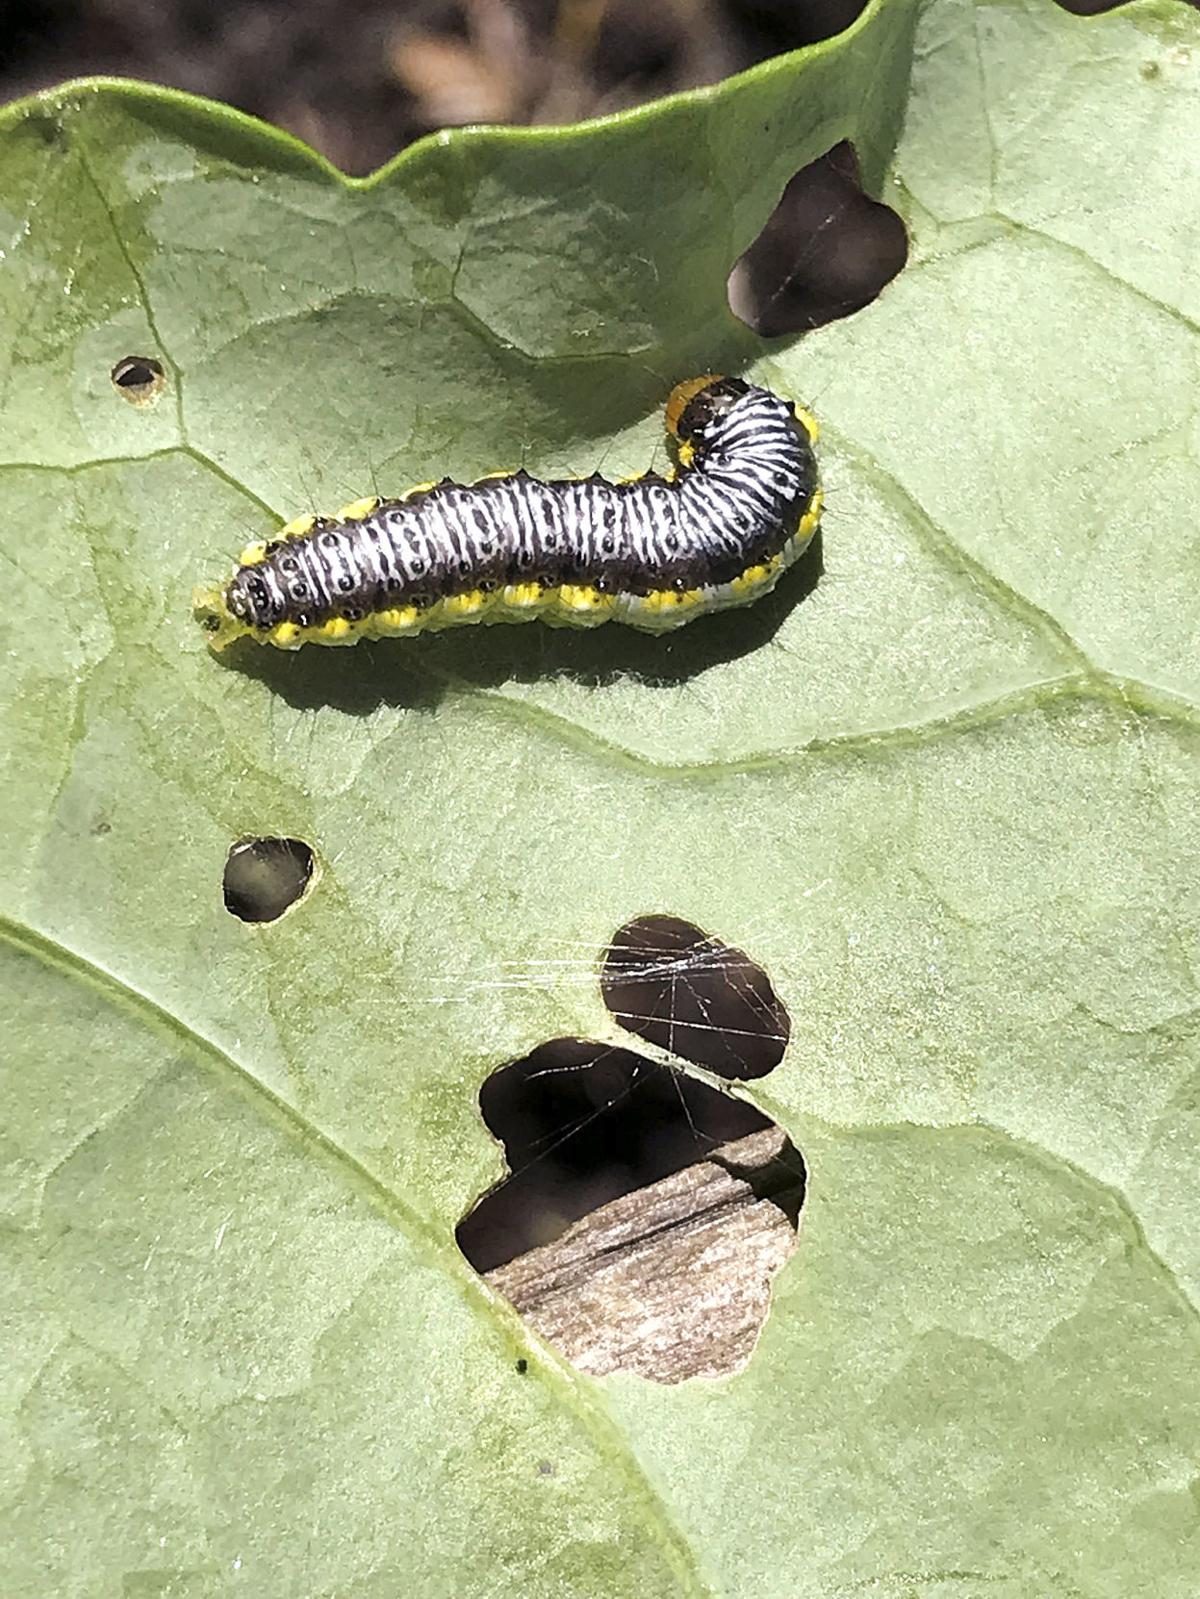 042519 COPSEY Caterpillar on cabbages